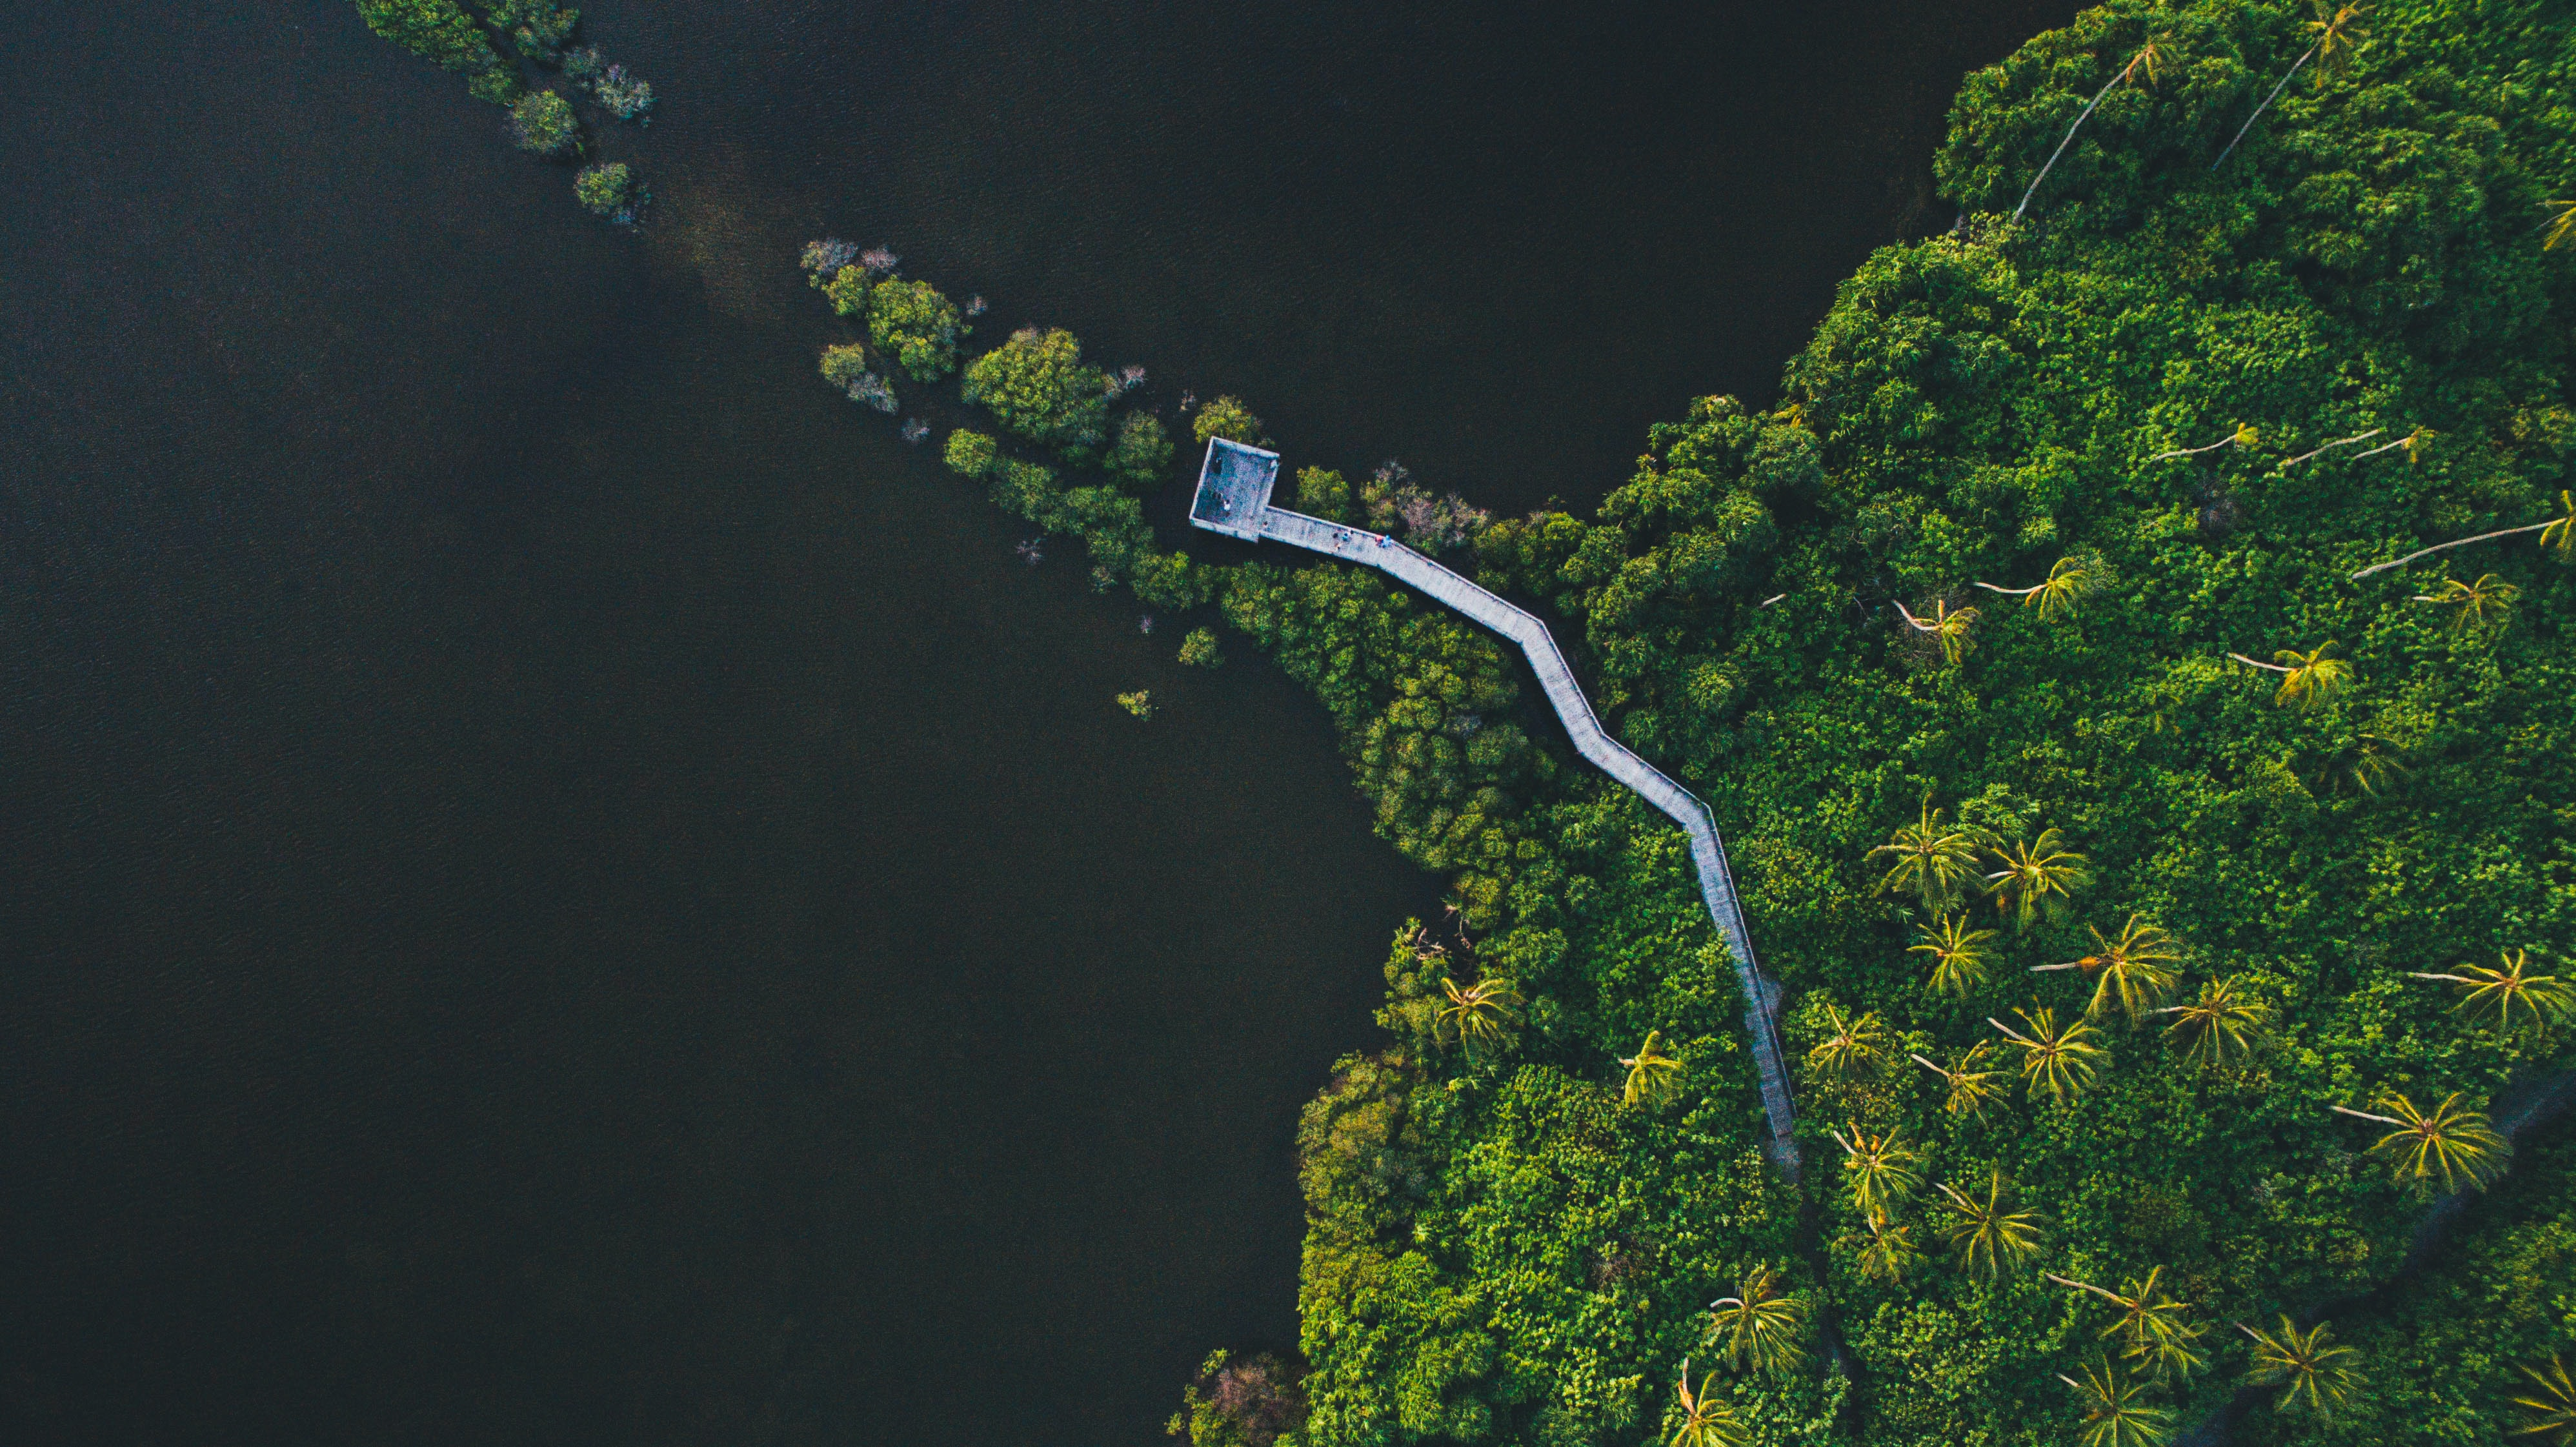 A drone shot of an observation point in a tropical forest near the ocean